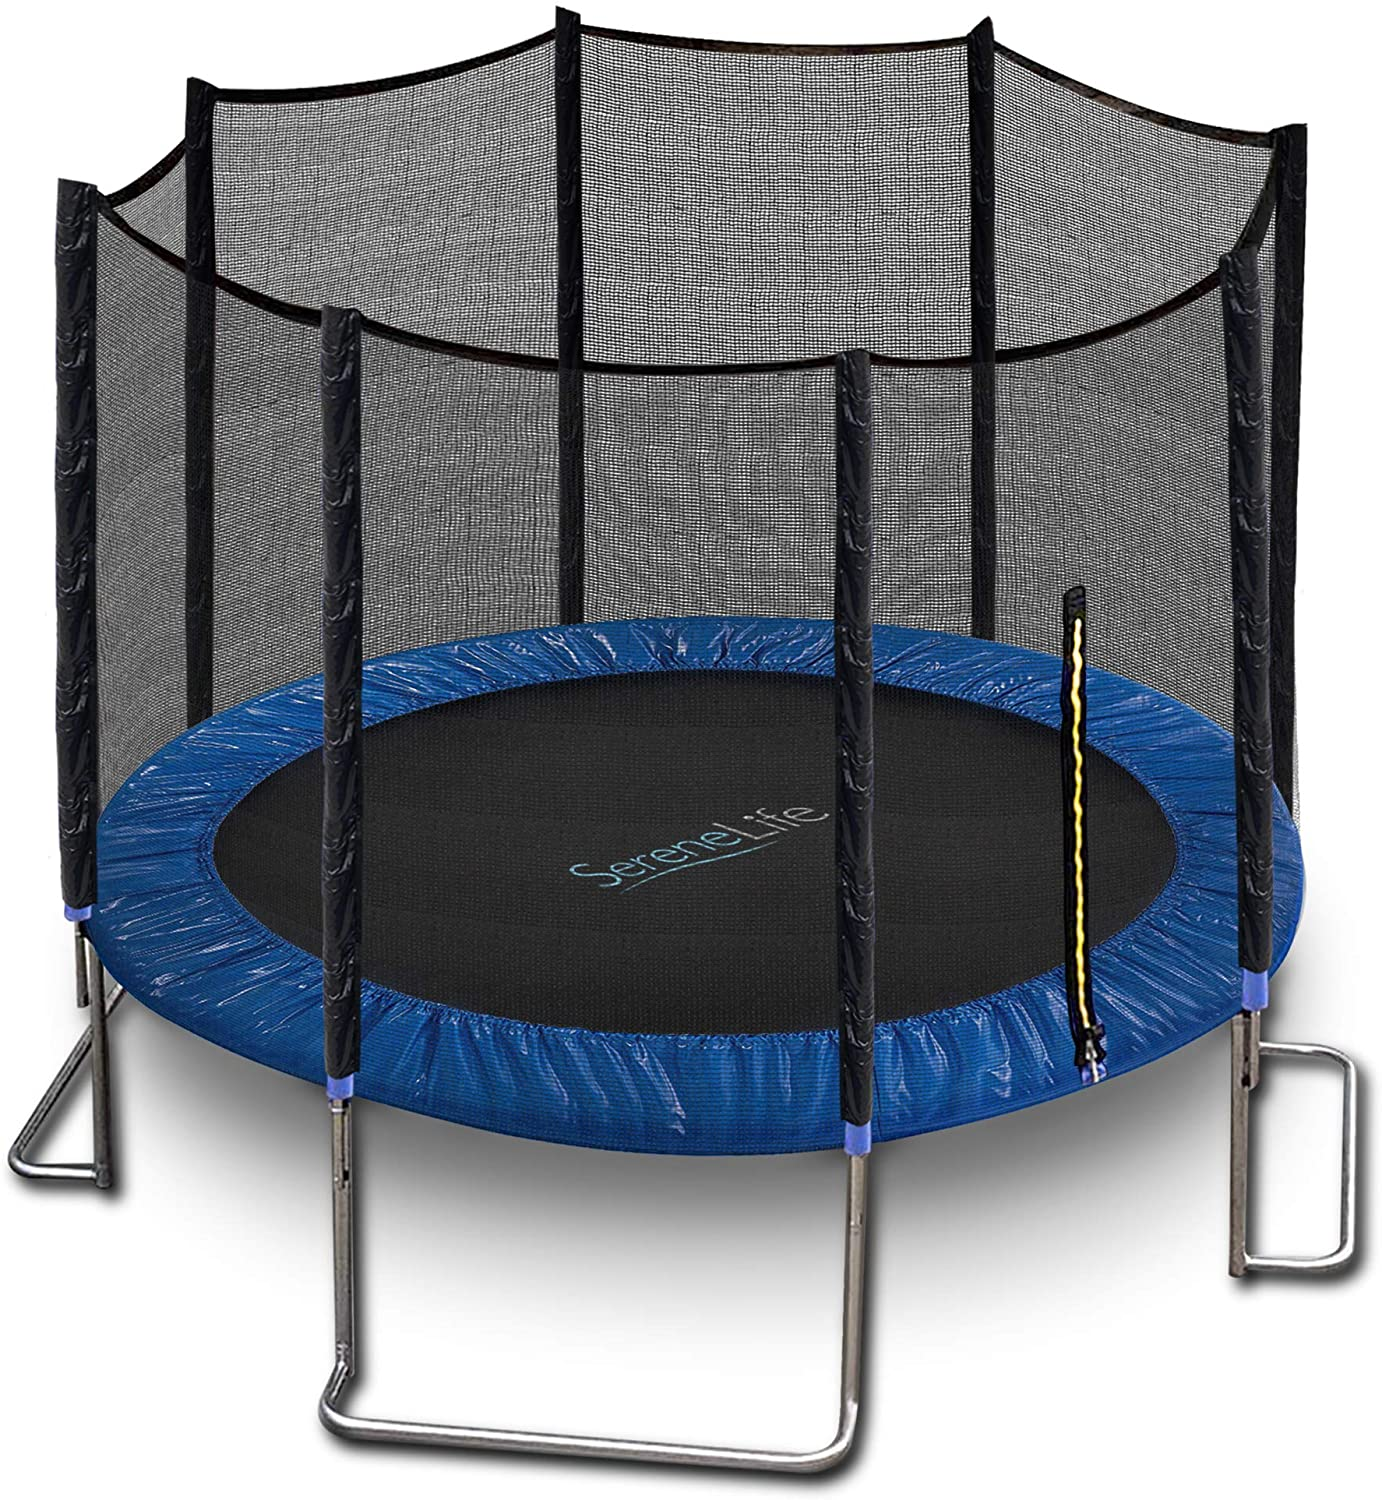 SereneLife 10ft ASTM Approved Trampoline with Net Enclosure